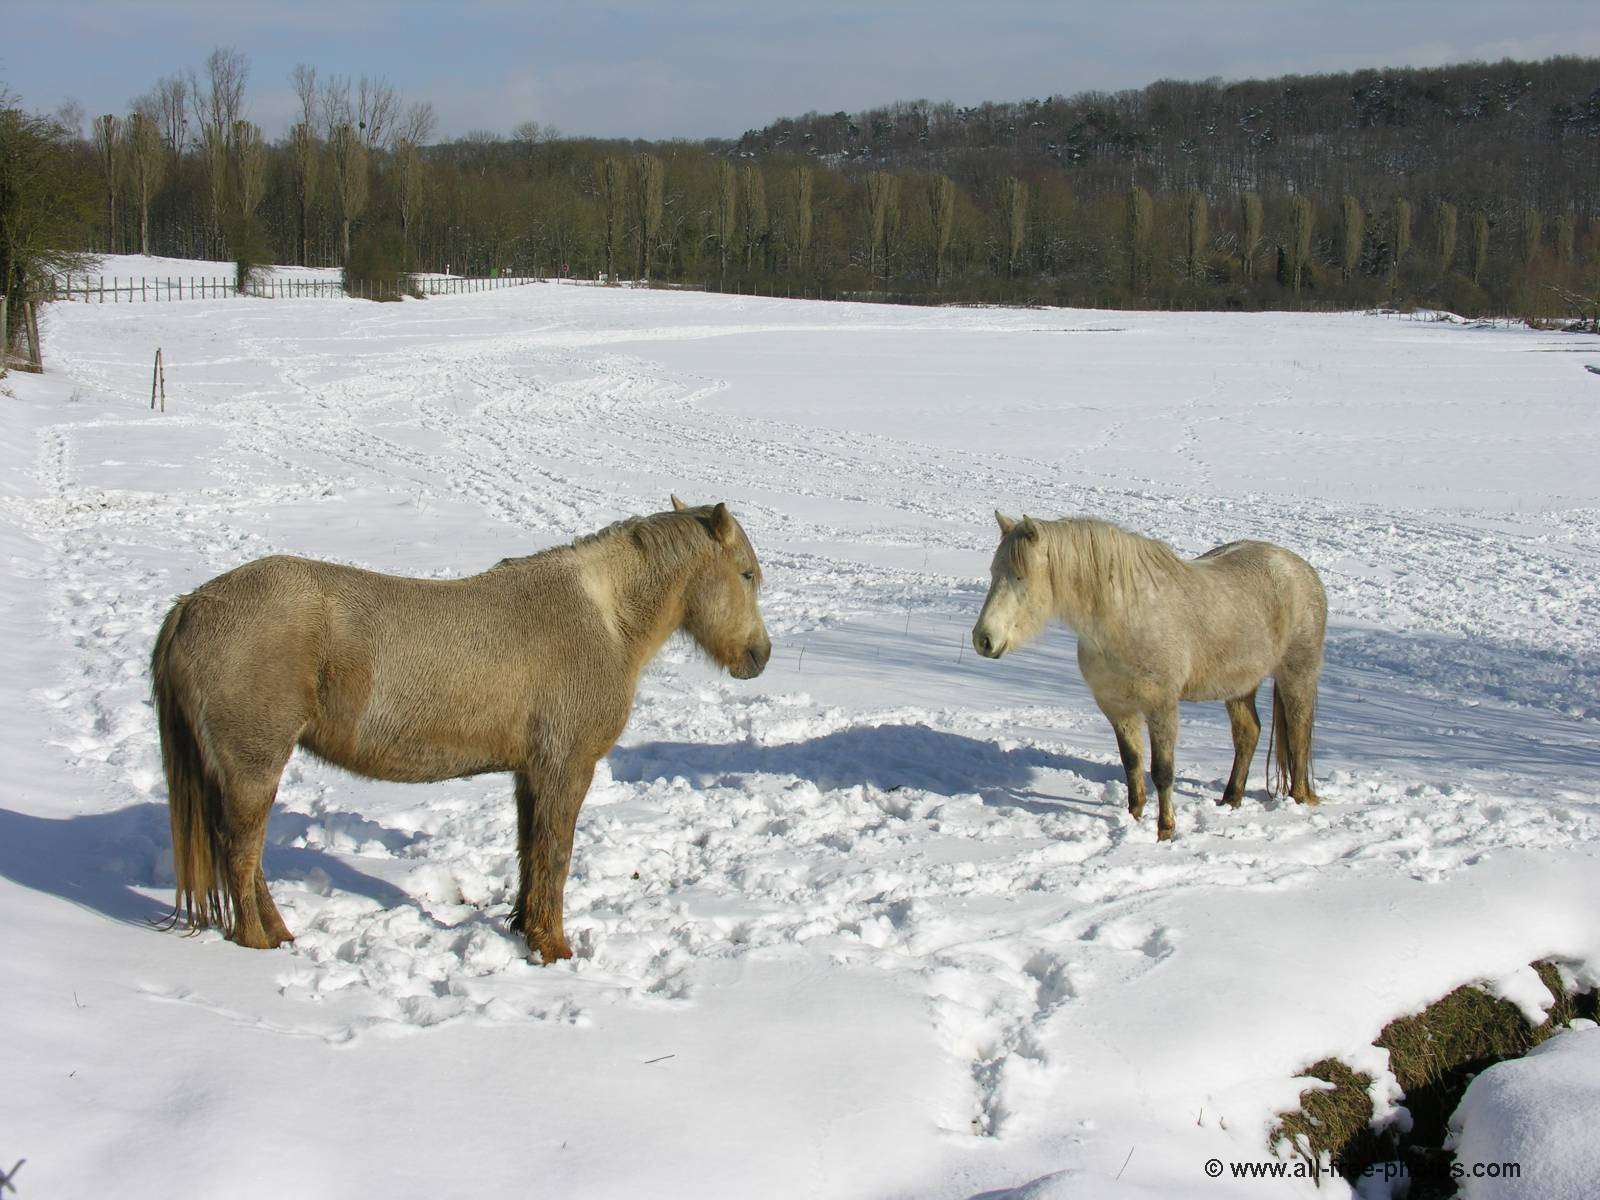 Horses from Camargue